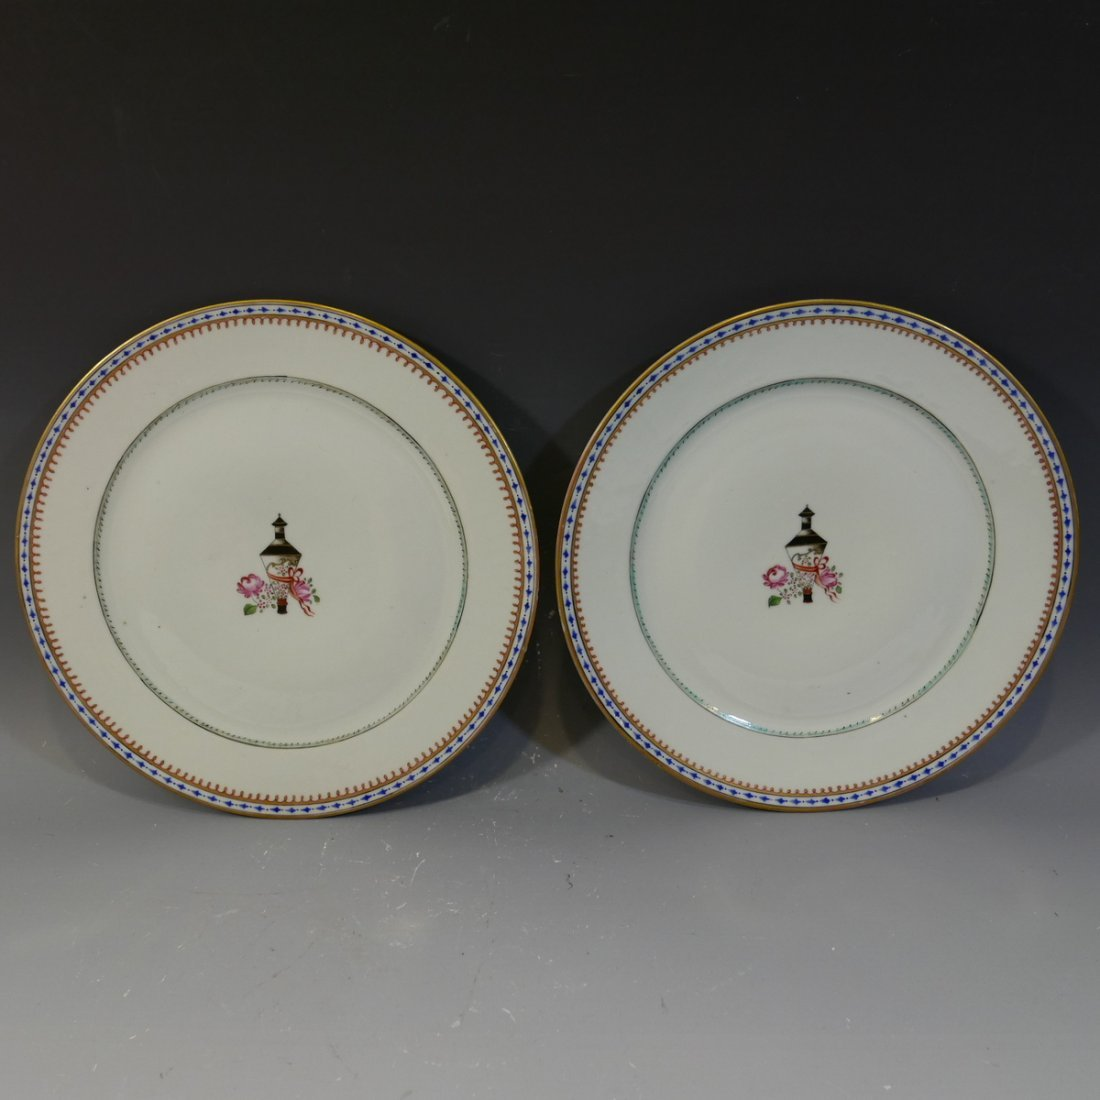 PAIR ANTIQUE CHINESE FAMILLE ROSE PORCELAIN PLATES - 18